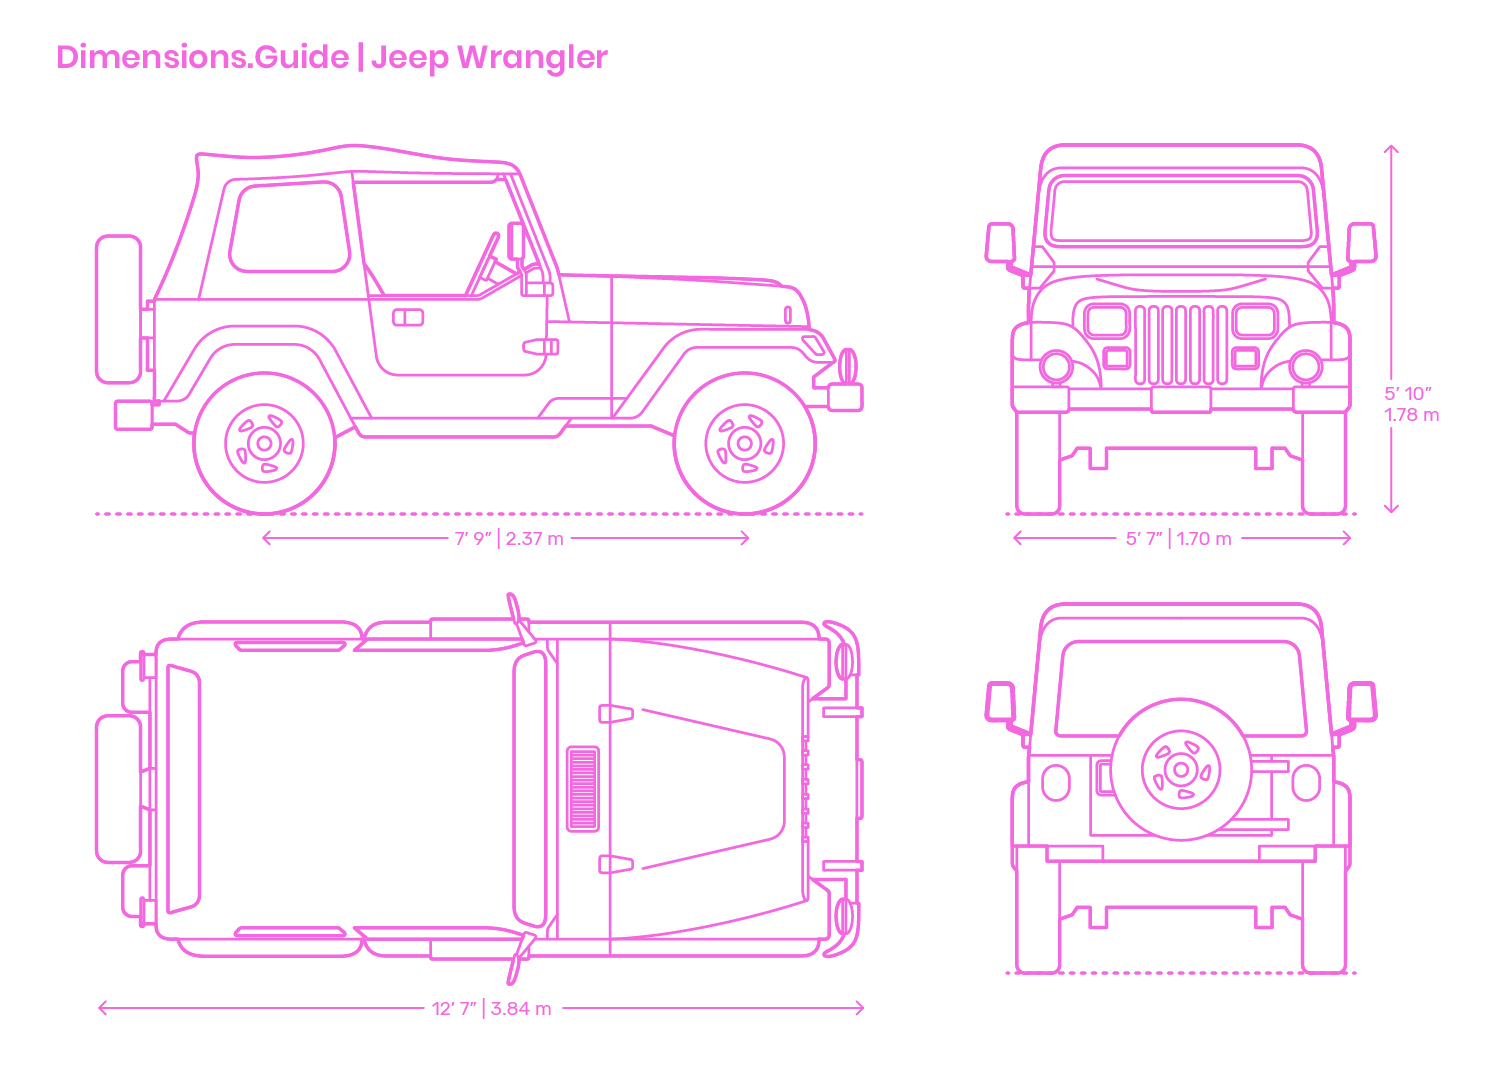 Jeep Wrangler Dimensions Amp Drawings Dimensions Guide